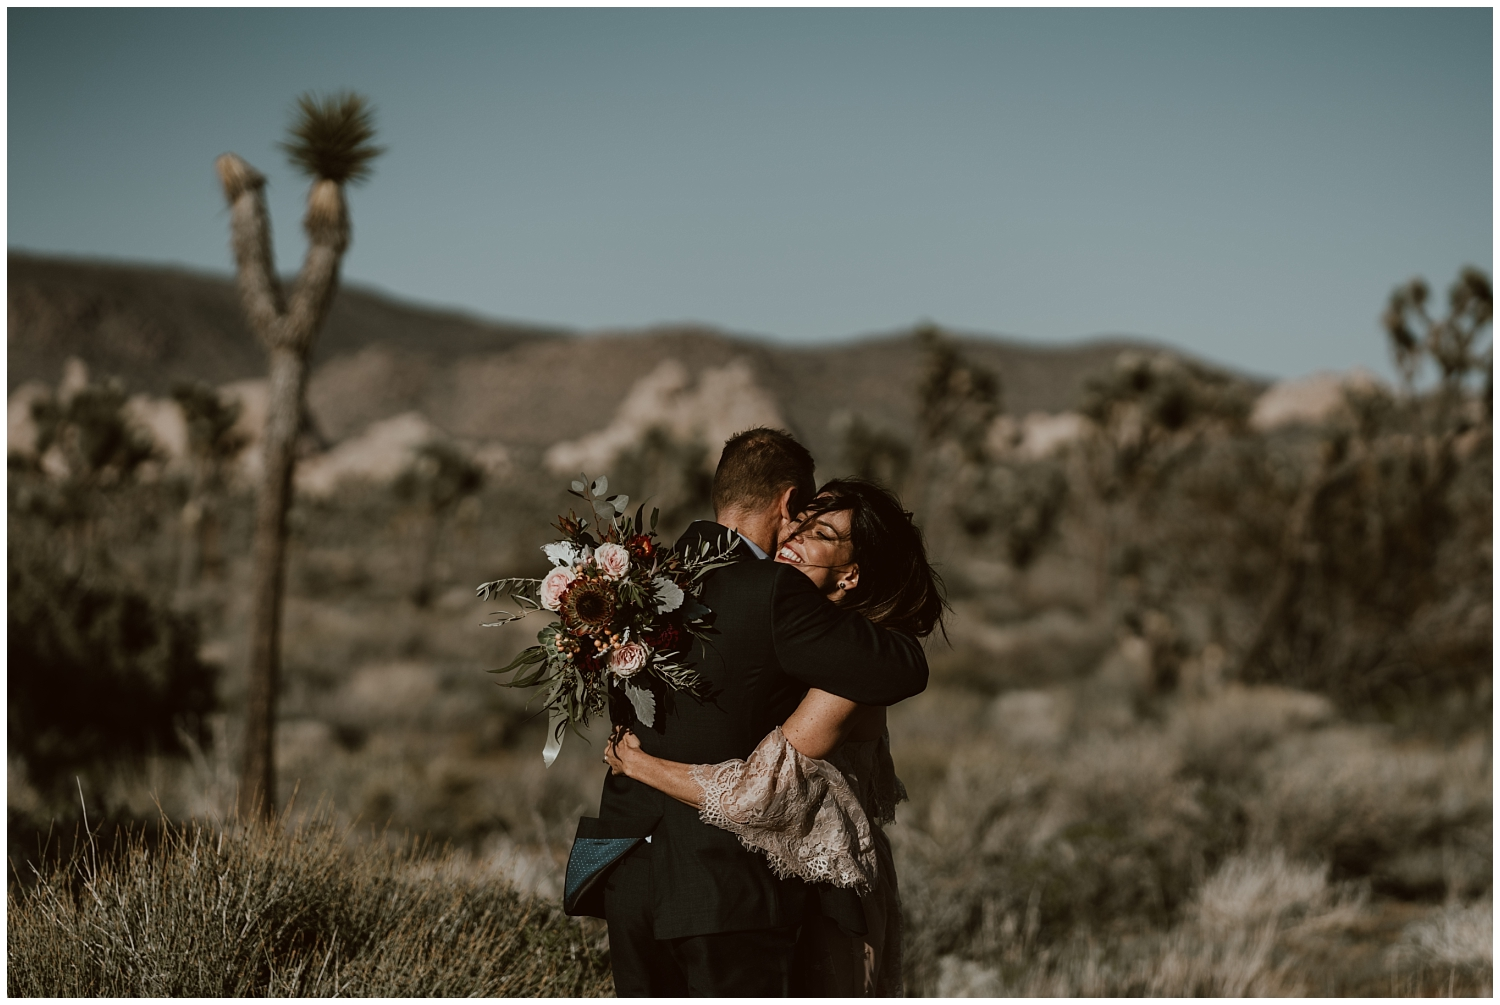 Cap-Rock-Joshua-Tree-Elopement-0013.jpg